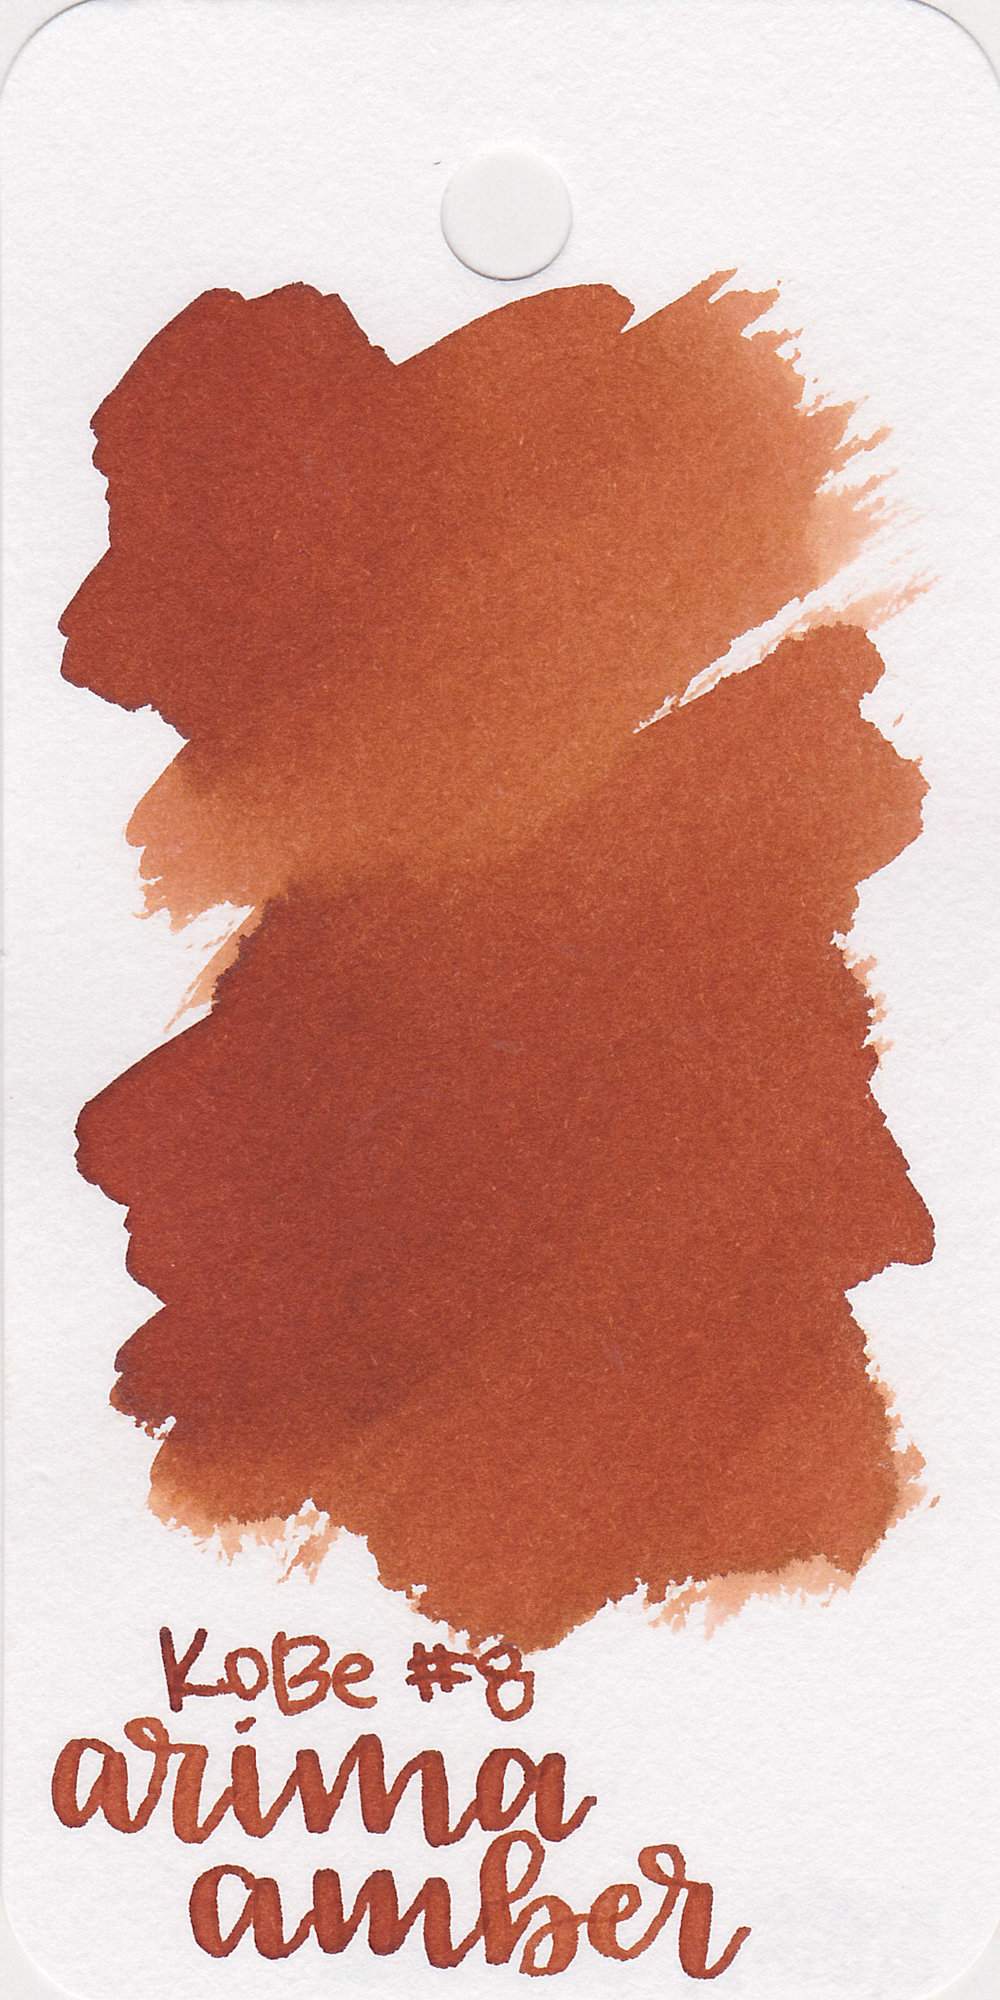 The color: - Arima Amber is a dark red-orange.